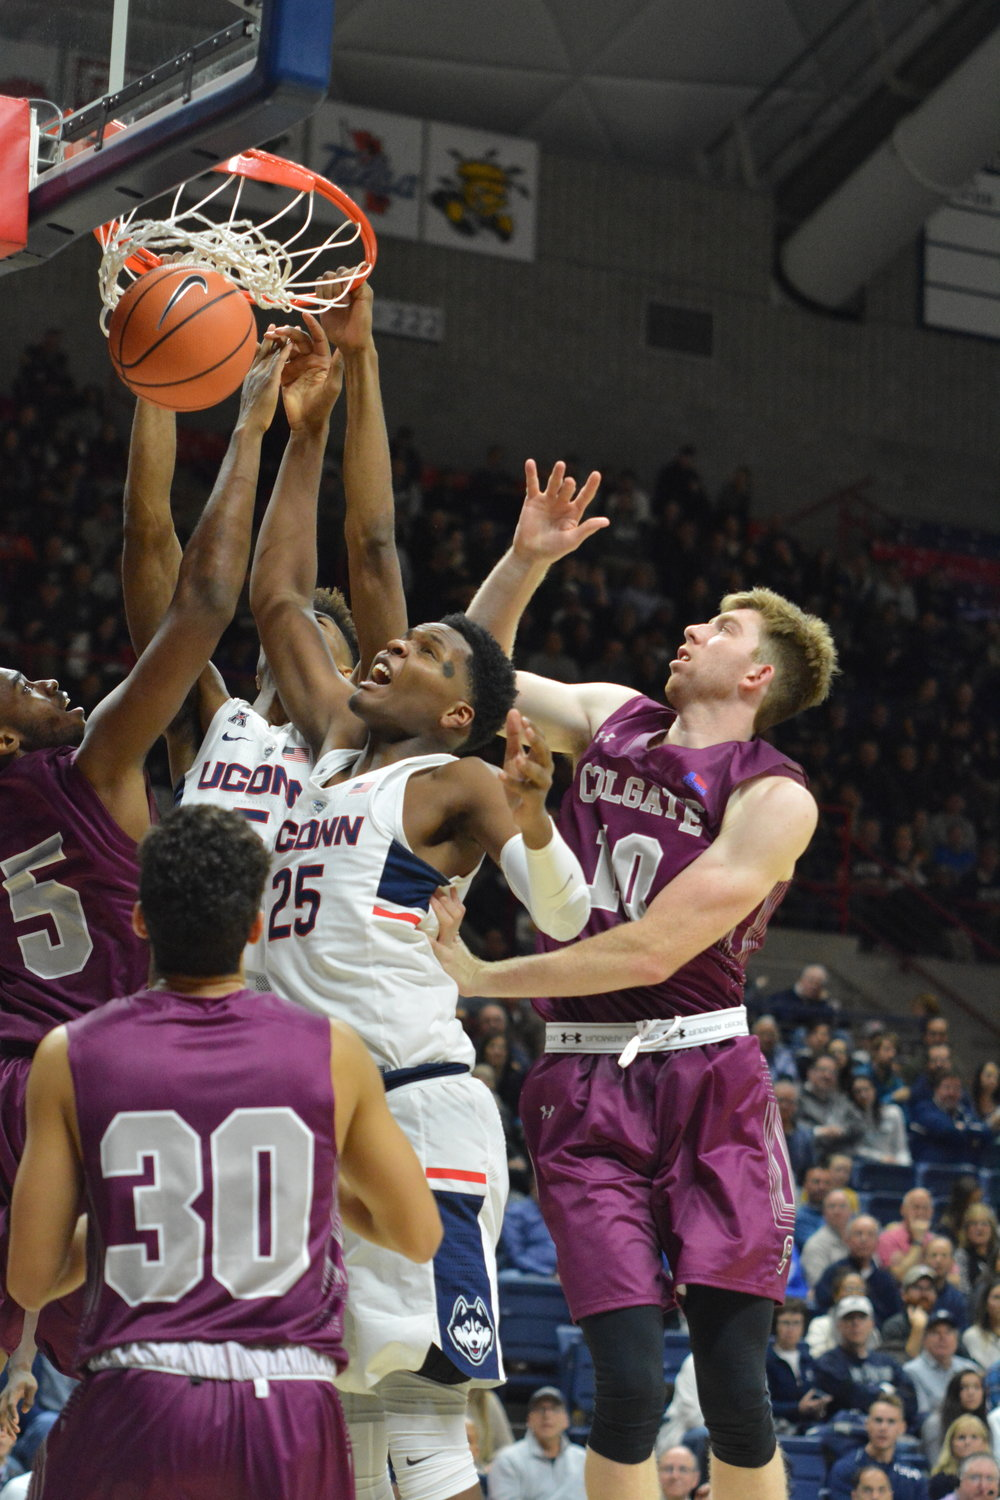 The Men's basketball team opens their home season at Gampel on Friday, November 10 with a game against Colgate. The Huskies won with a final score of 70-58 (Olivia Stenger/The Daily Campus)